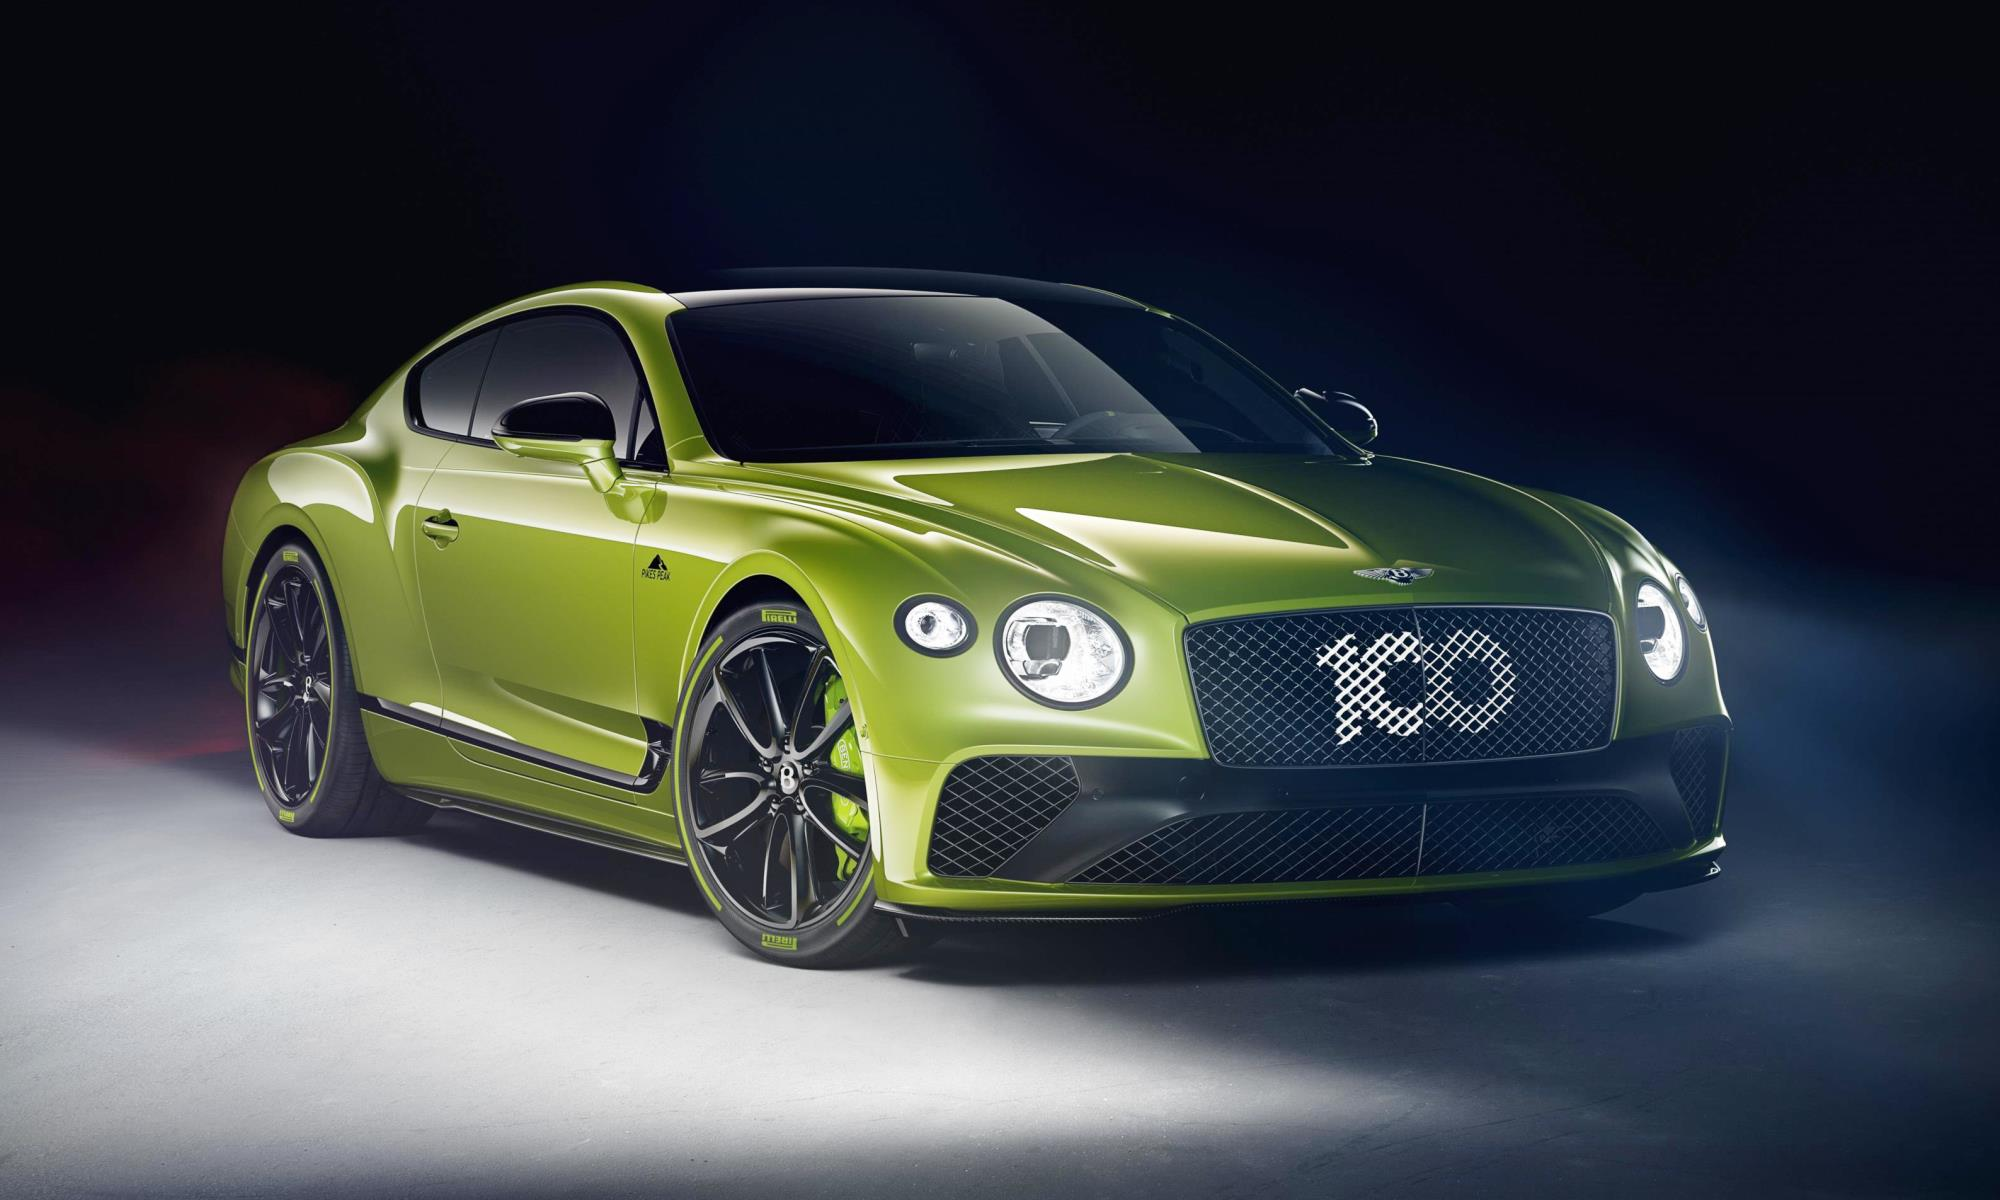 Continental GT Limited Edition front